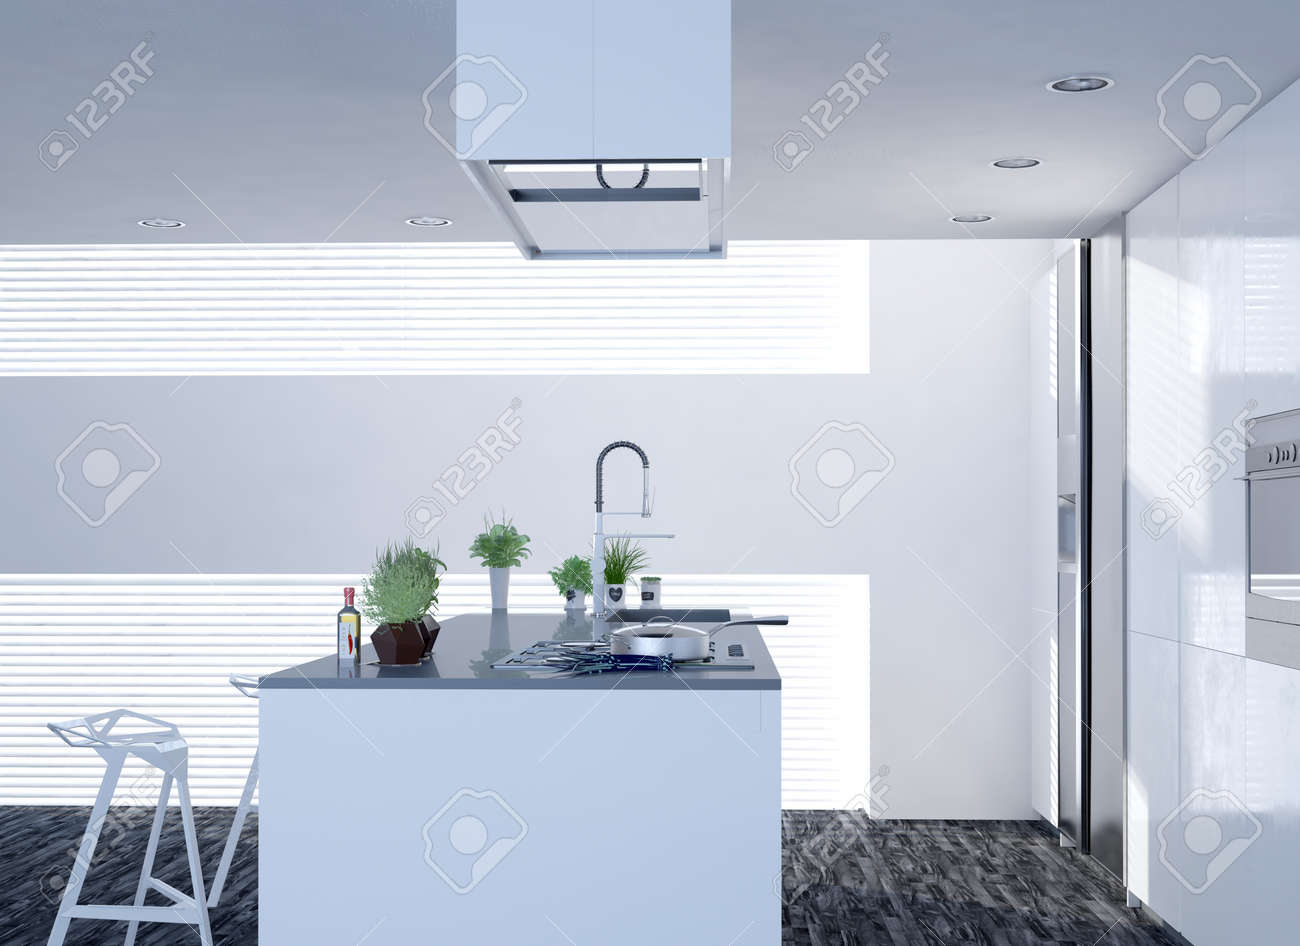 Compact open plan bright white kitchen with modern decor and